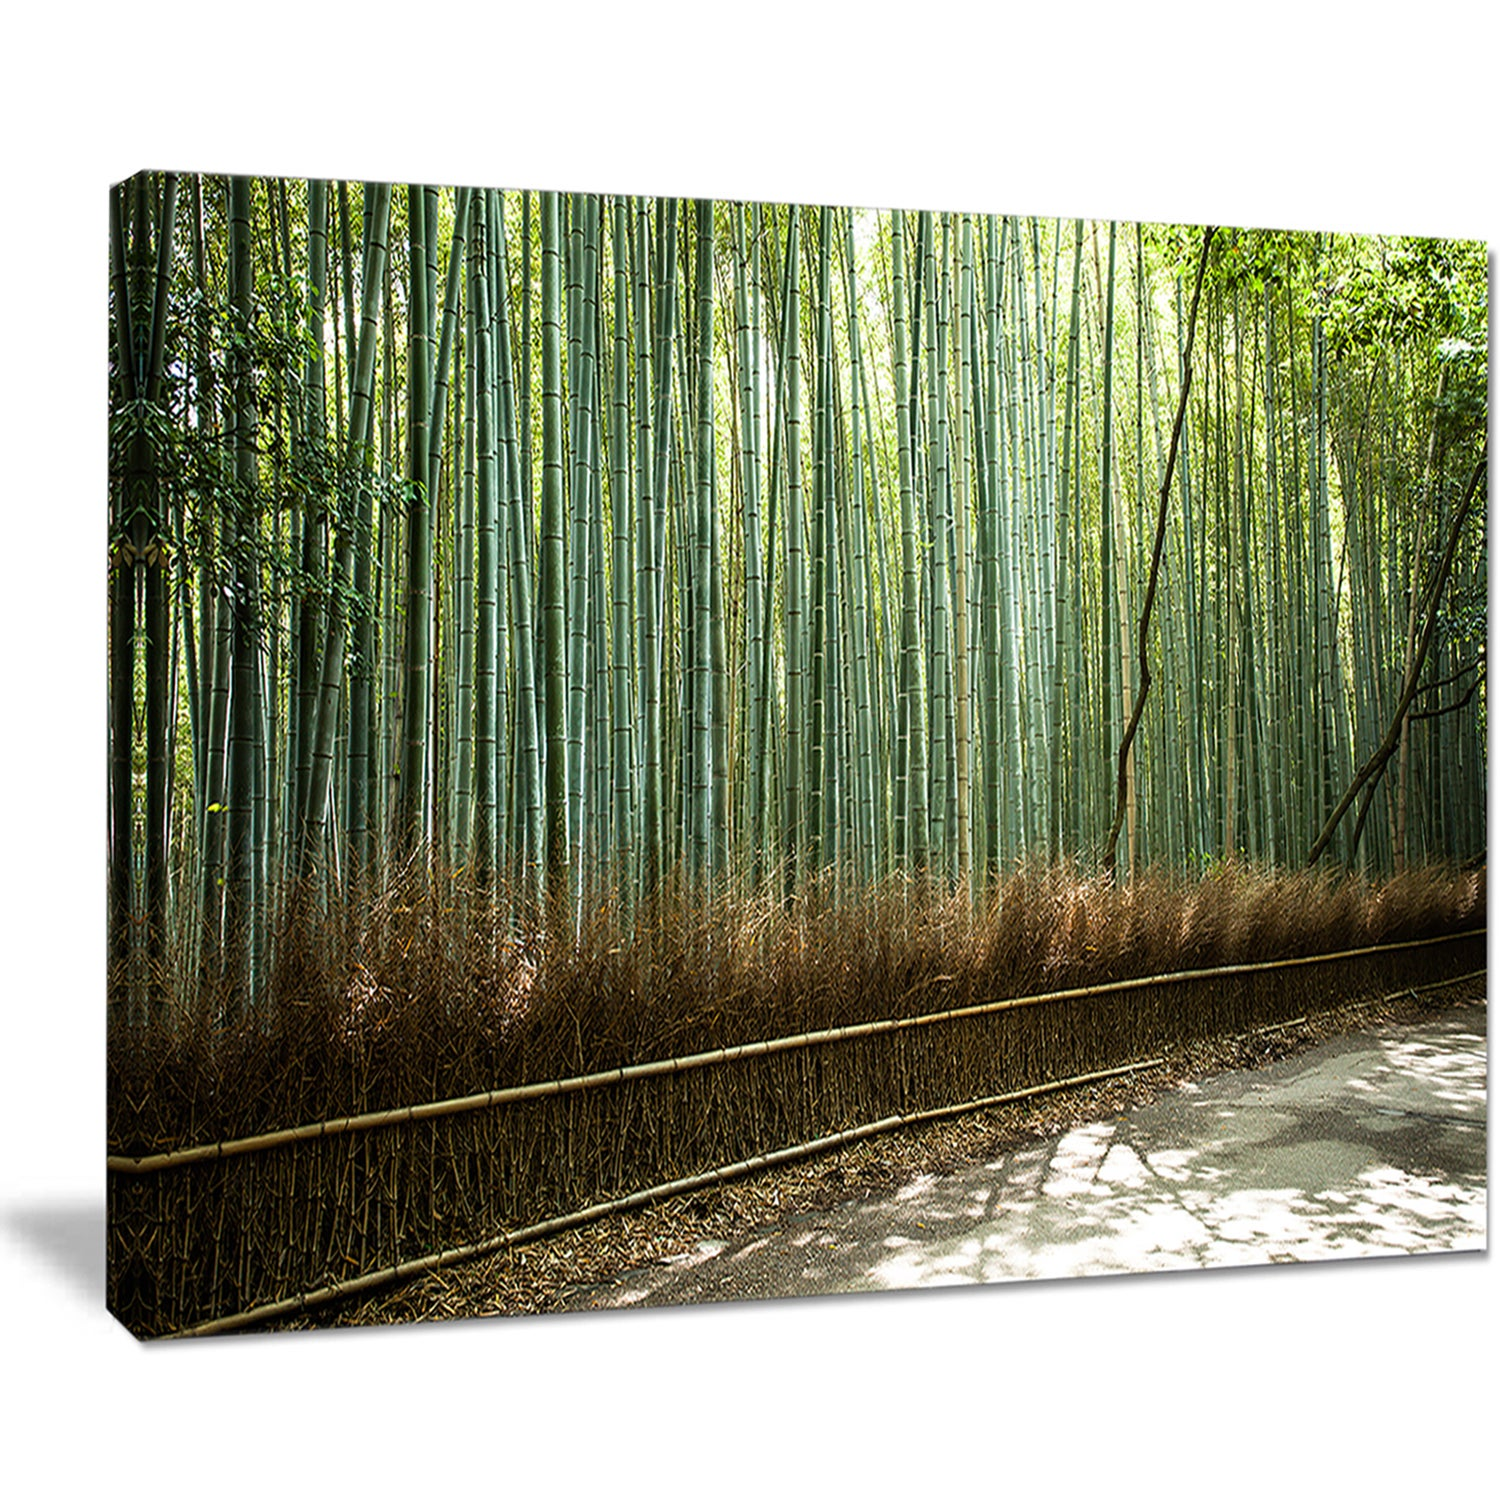 Beautiful-View-of-Bamboo-Forest-Forest-Canvas-Wall-Art-Mini thumbnail 8